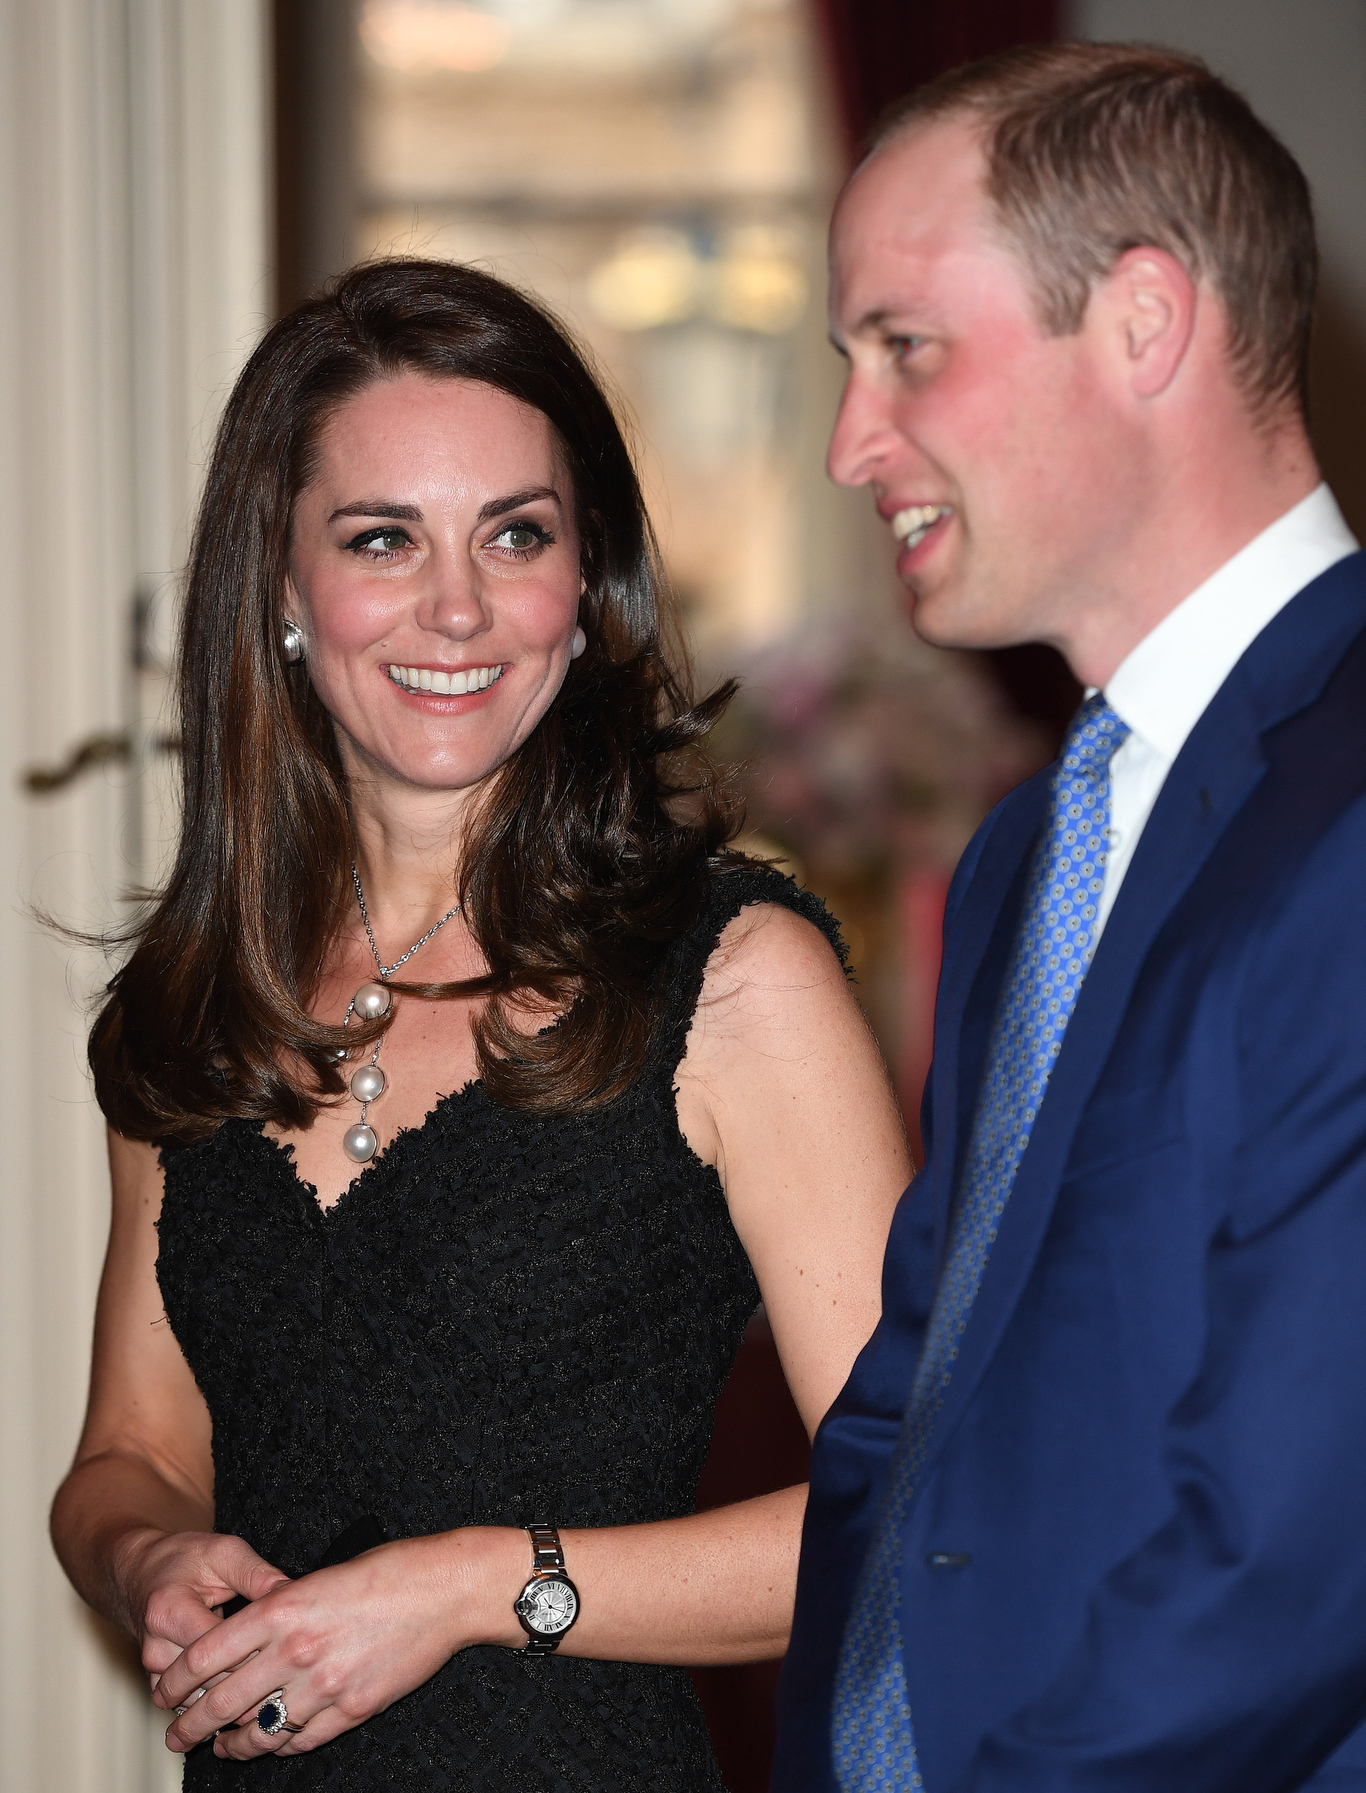 """28 Days UK OutMandatory Credit: Photo by REX/Shutterstock (8523329h)Catherine Duchess of Cambridge and Prince WilliamPrince William and Catherine Duchess of Cambridge visit to Paris, France - 17 Mar 2017The Duke and Duchess of Cambridge attend a reception to mark the launch of """"Les Voisins"""" hosted by the British Ambassador at the British Embassy"""